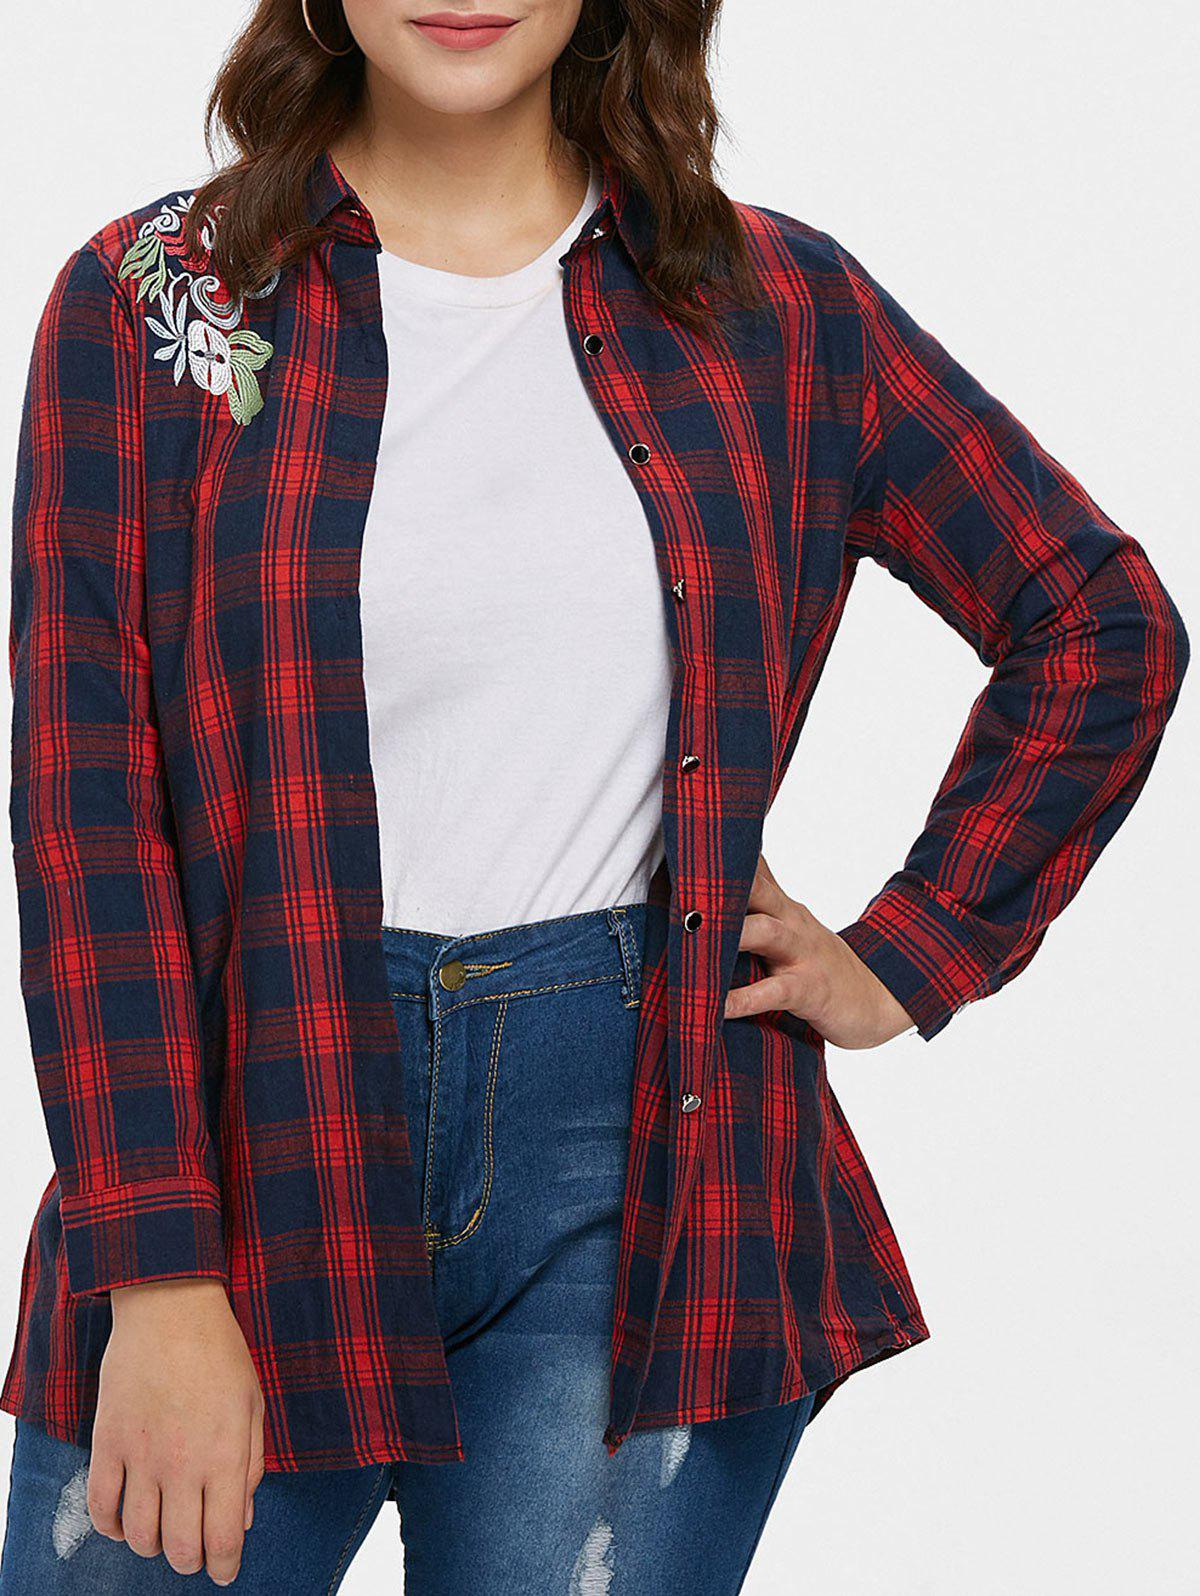 2019 Plus Size Embroidered Plaid Shirt Rosegalcom